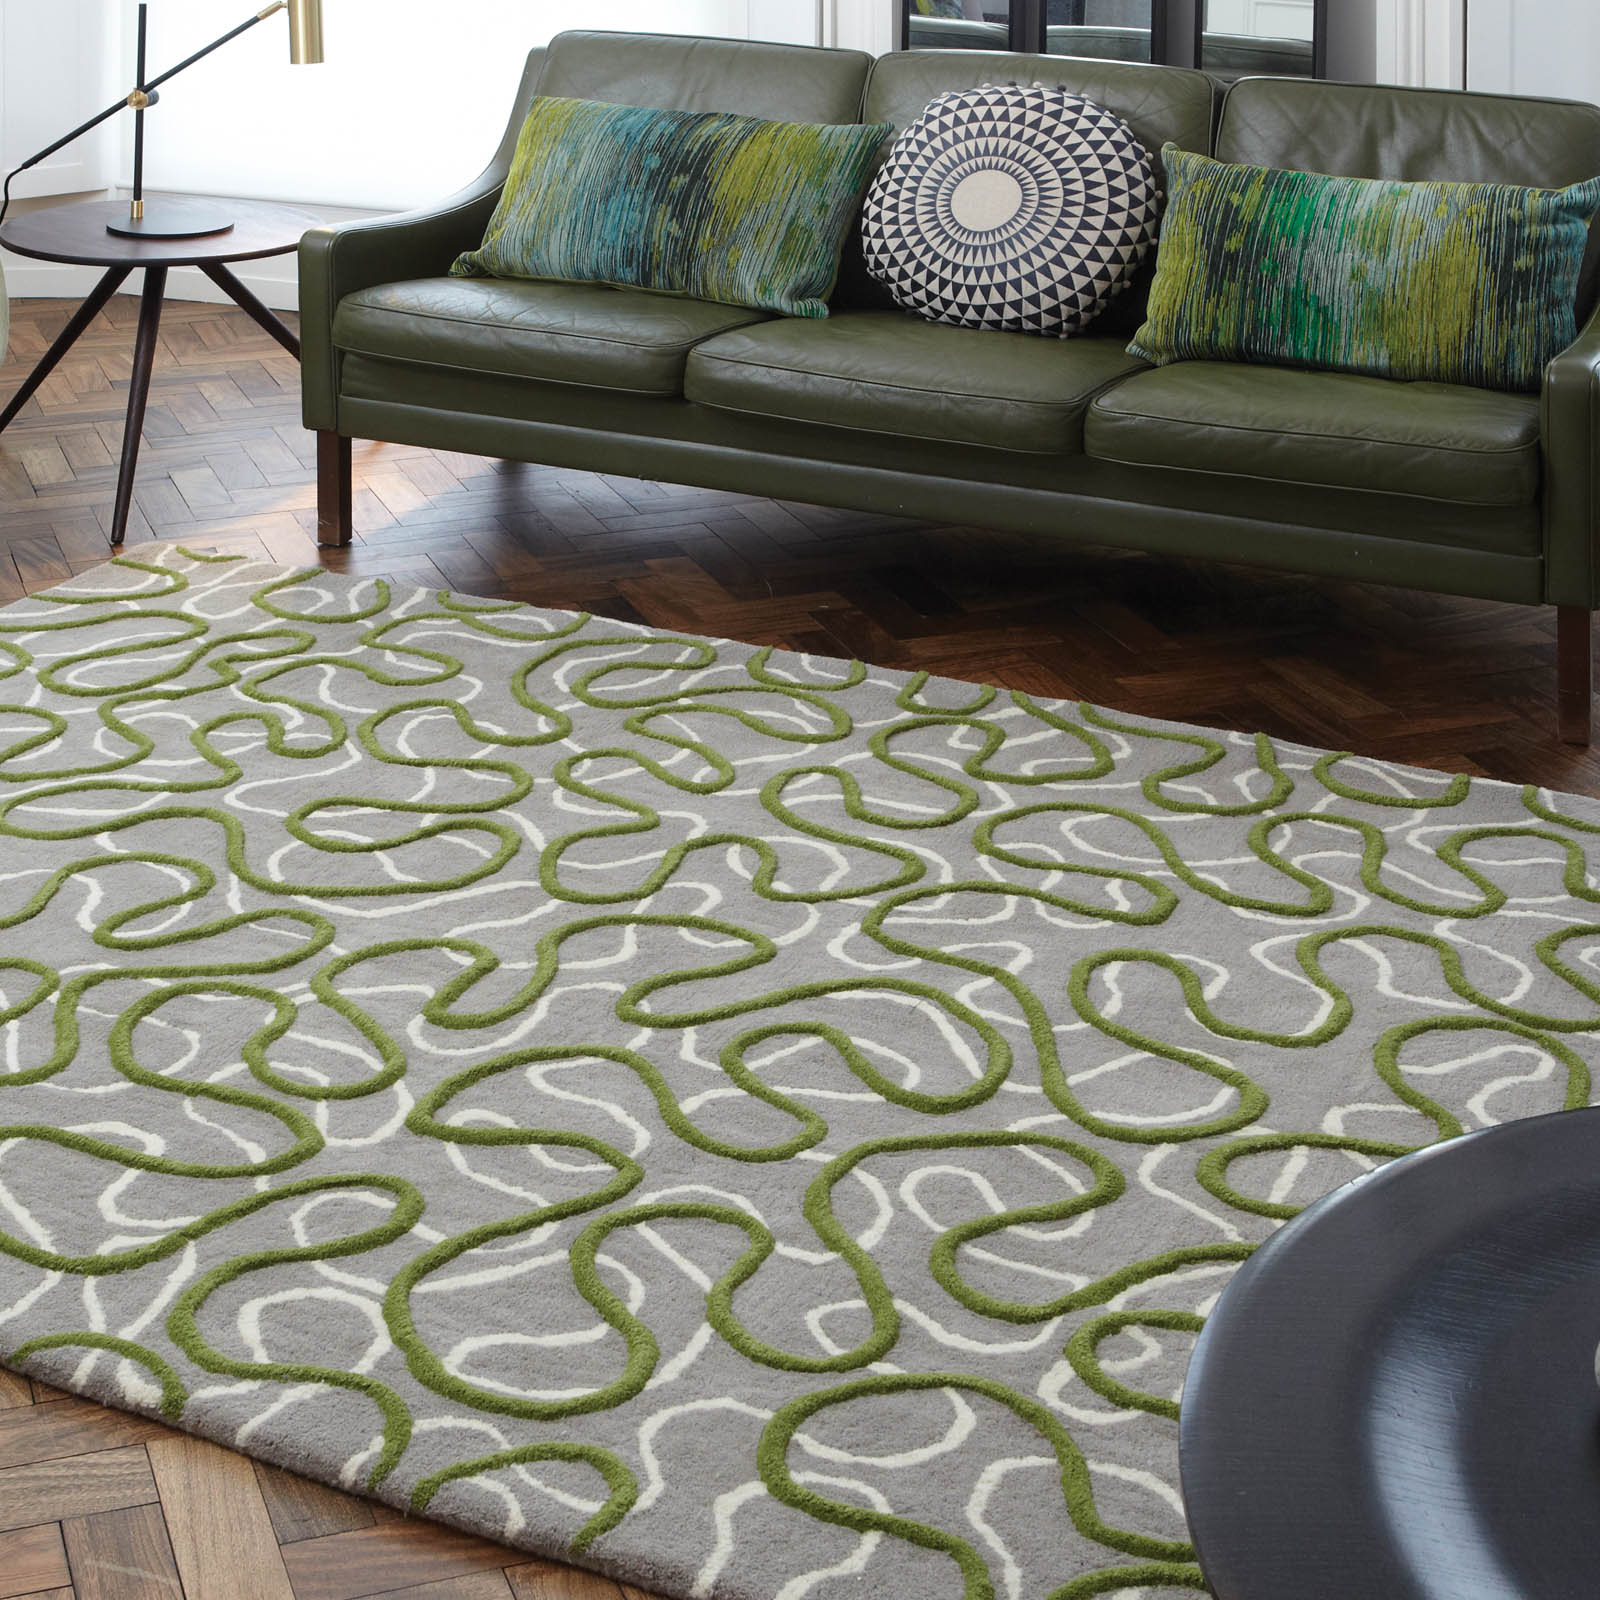 Rugs for March 3